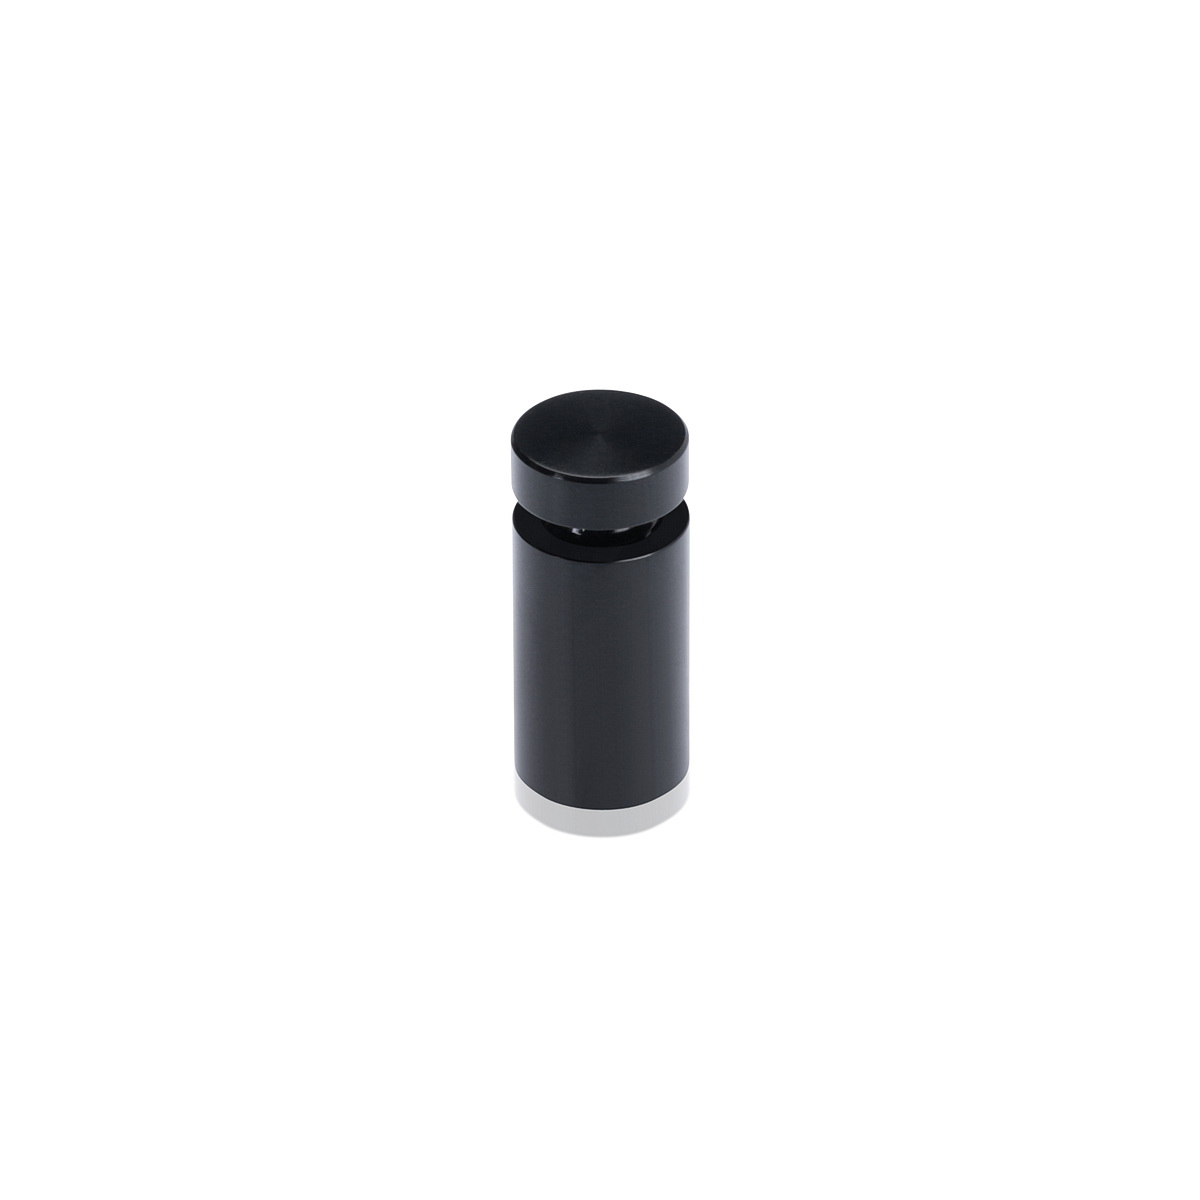 Affordable Aluminum Standoffs, Diameter: 1/2'', Standoff: 3/4'', Aluminum Black Finish